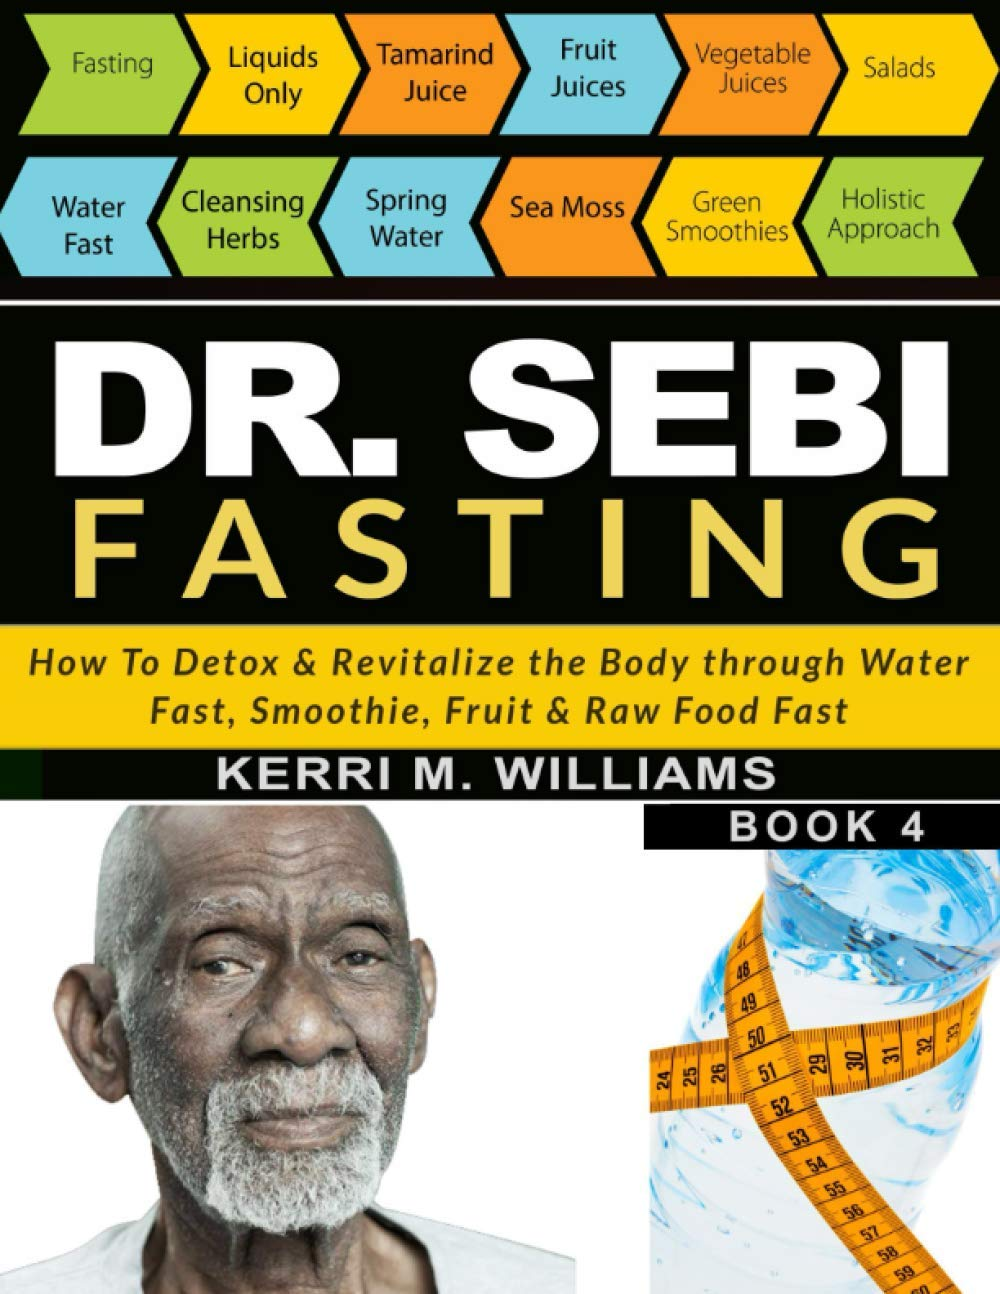 DR SEBI FASTING: How to Detox & Revitalize the Body through Water Fast, Smoothie, Fruit & Raw Food Fast | With Meal Plans & Daily Fasting Guide (Dr Sebi Books) 1